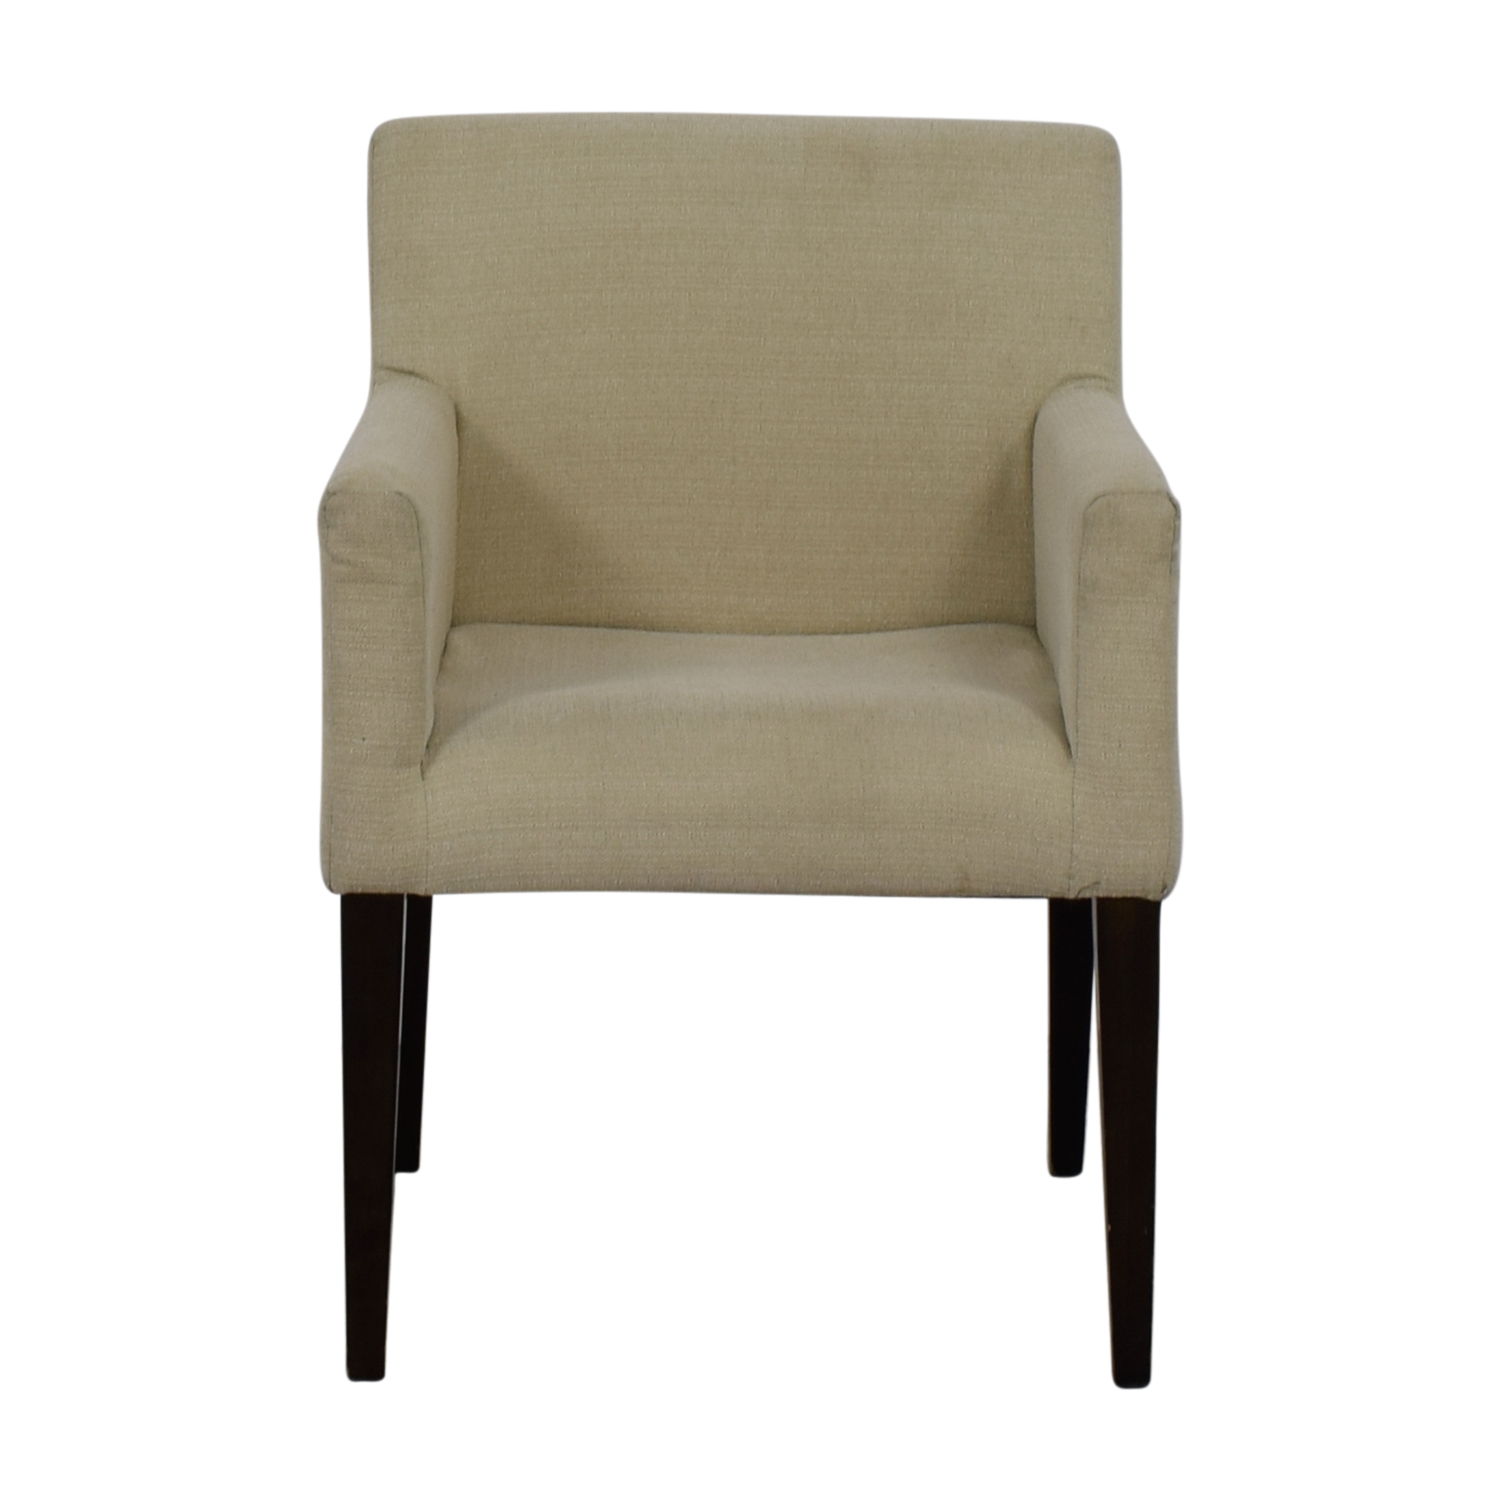 West Elm West Elm Cream Accent Chair dimensions